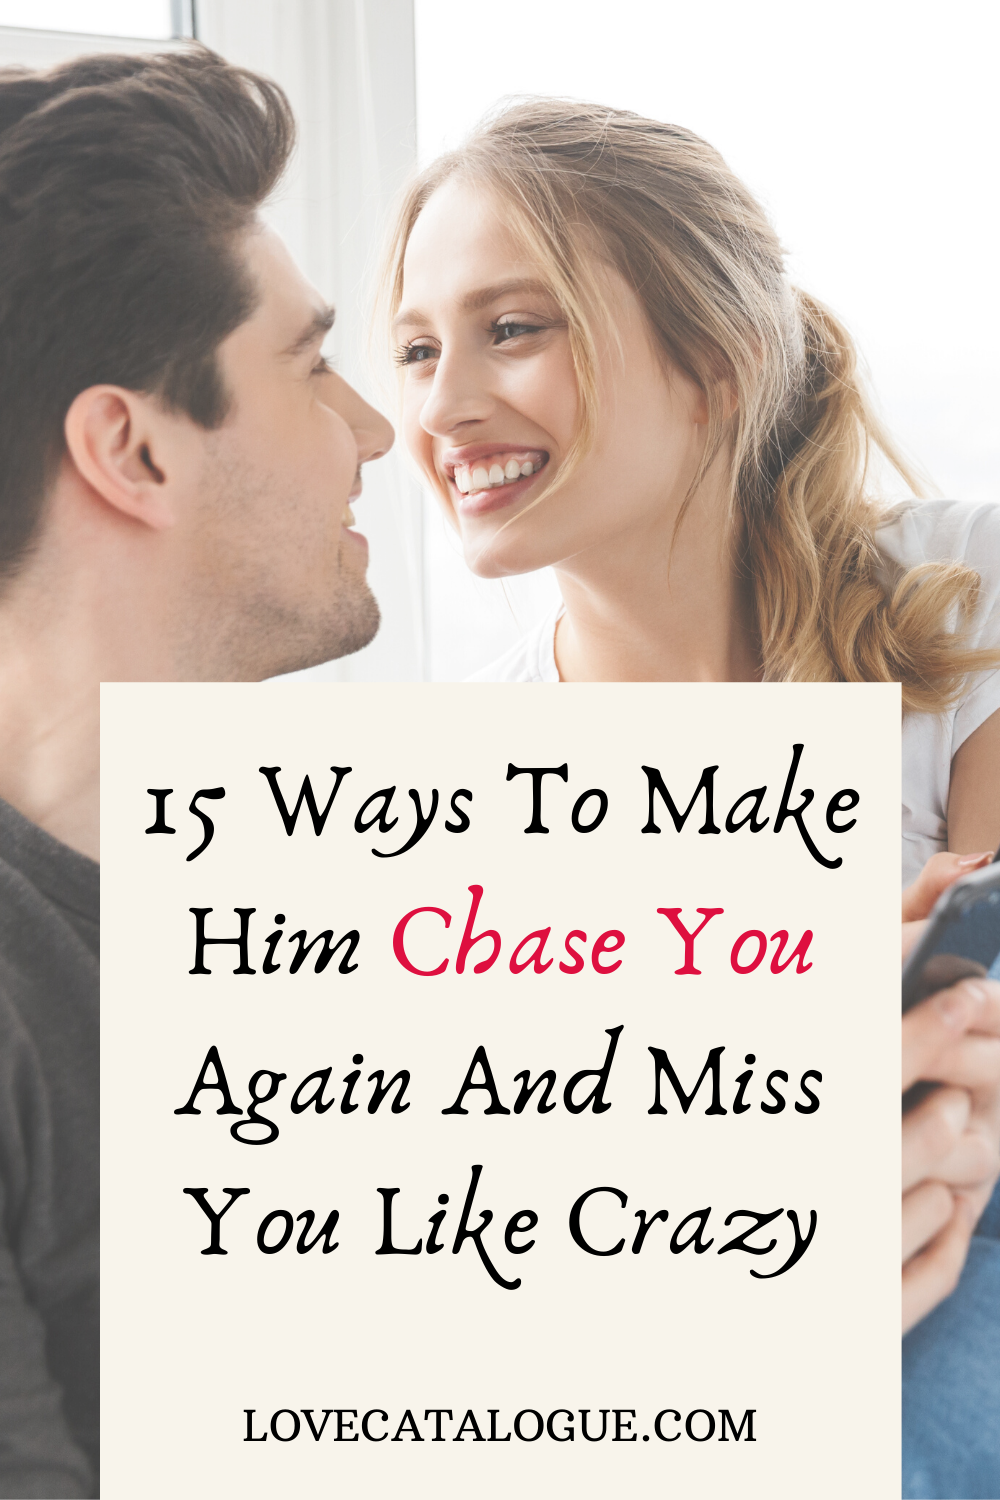 How To Make Him Fall In Love Again After A Breakup by Charles Bill ...